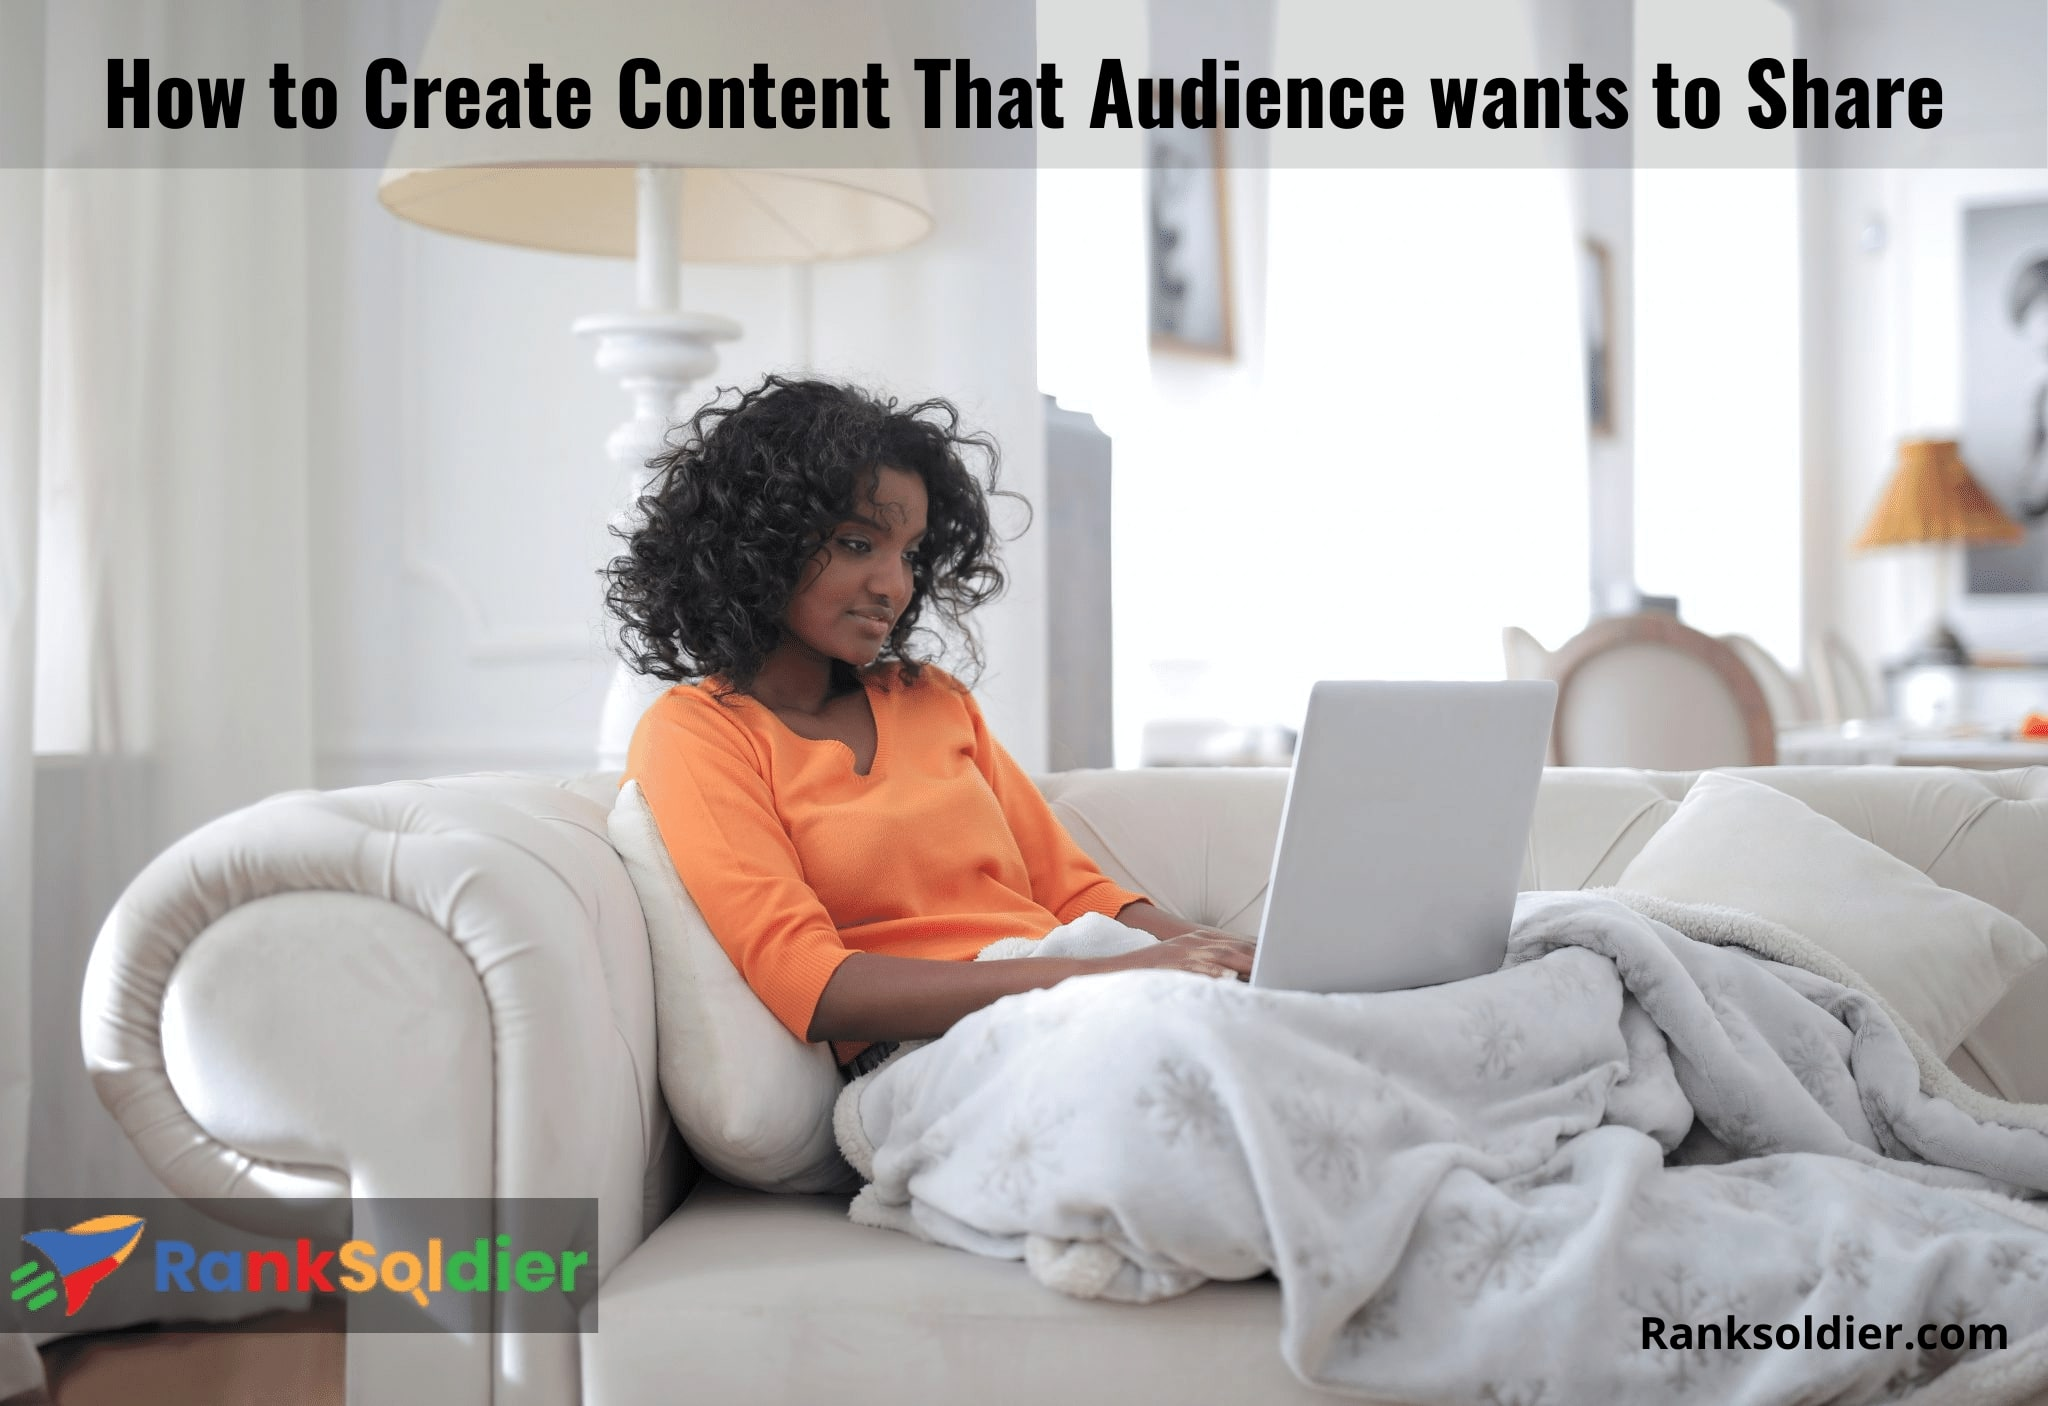 How to Create Content That Audience wants to Share